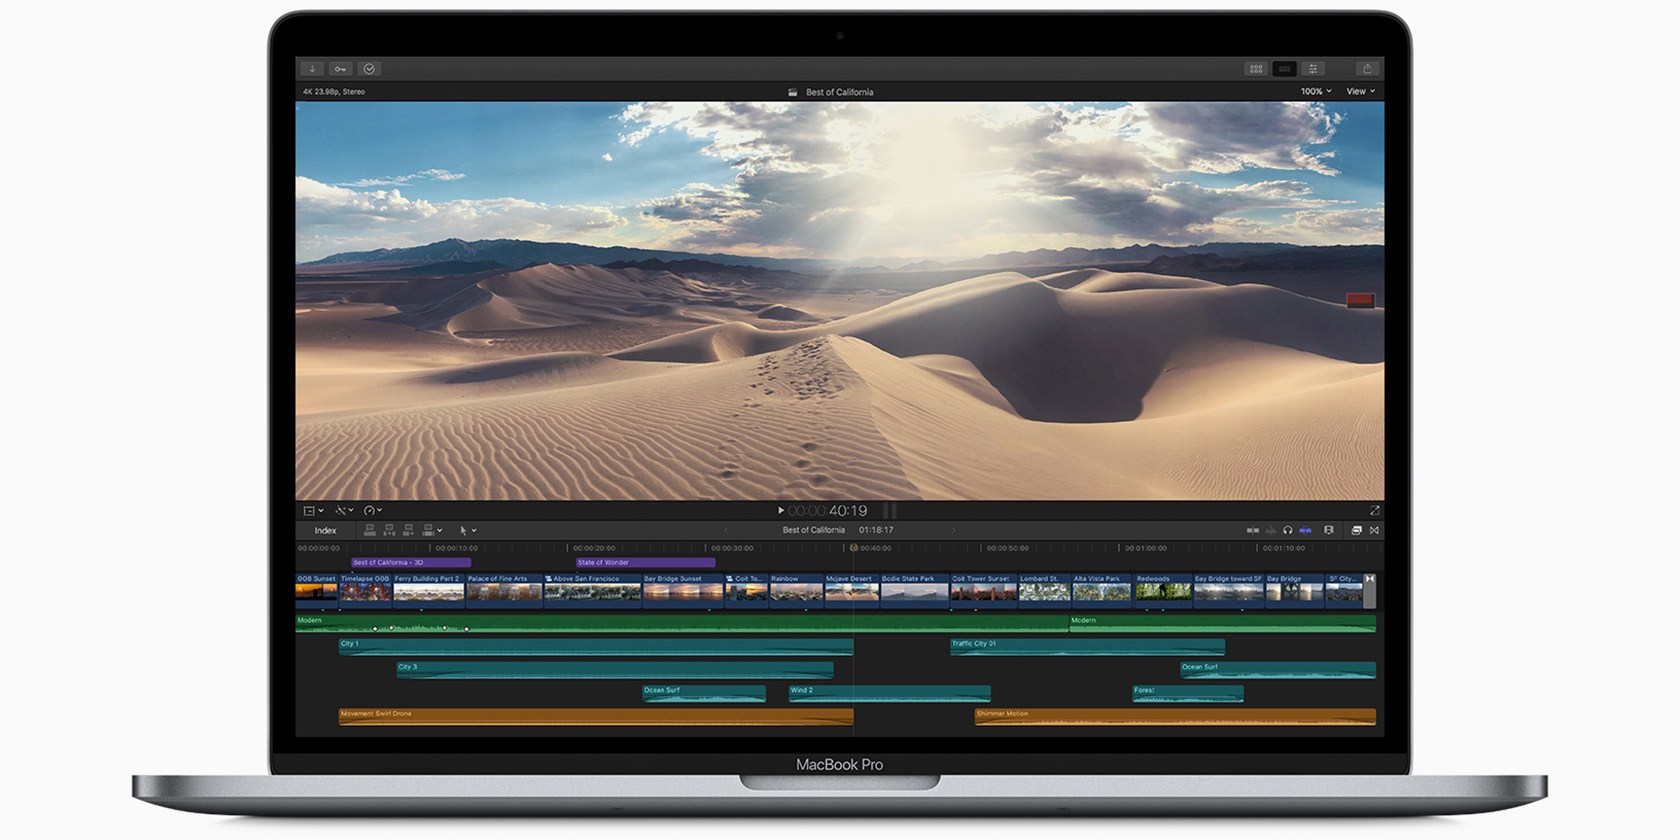 Apple Updates MacBook Pro With Faster Processor and Better Keyboards